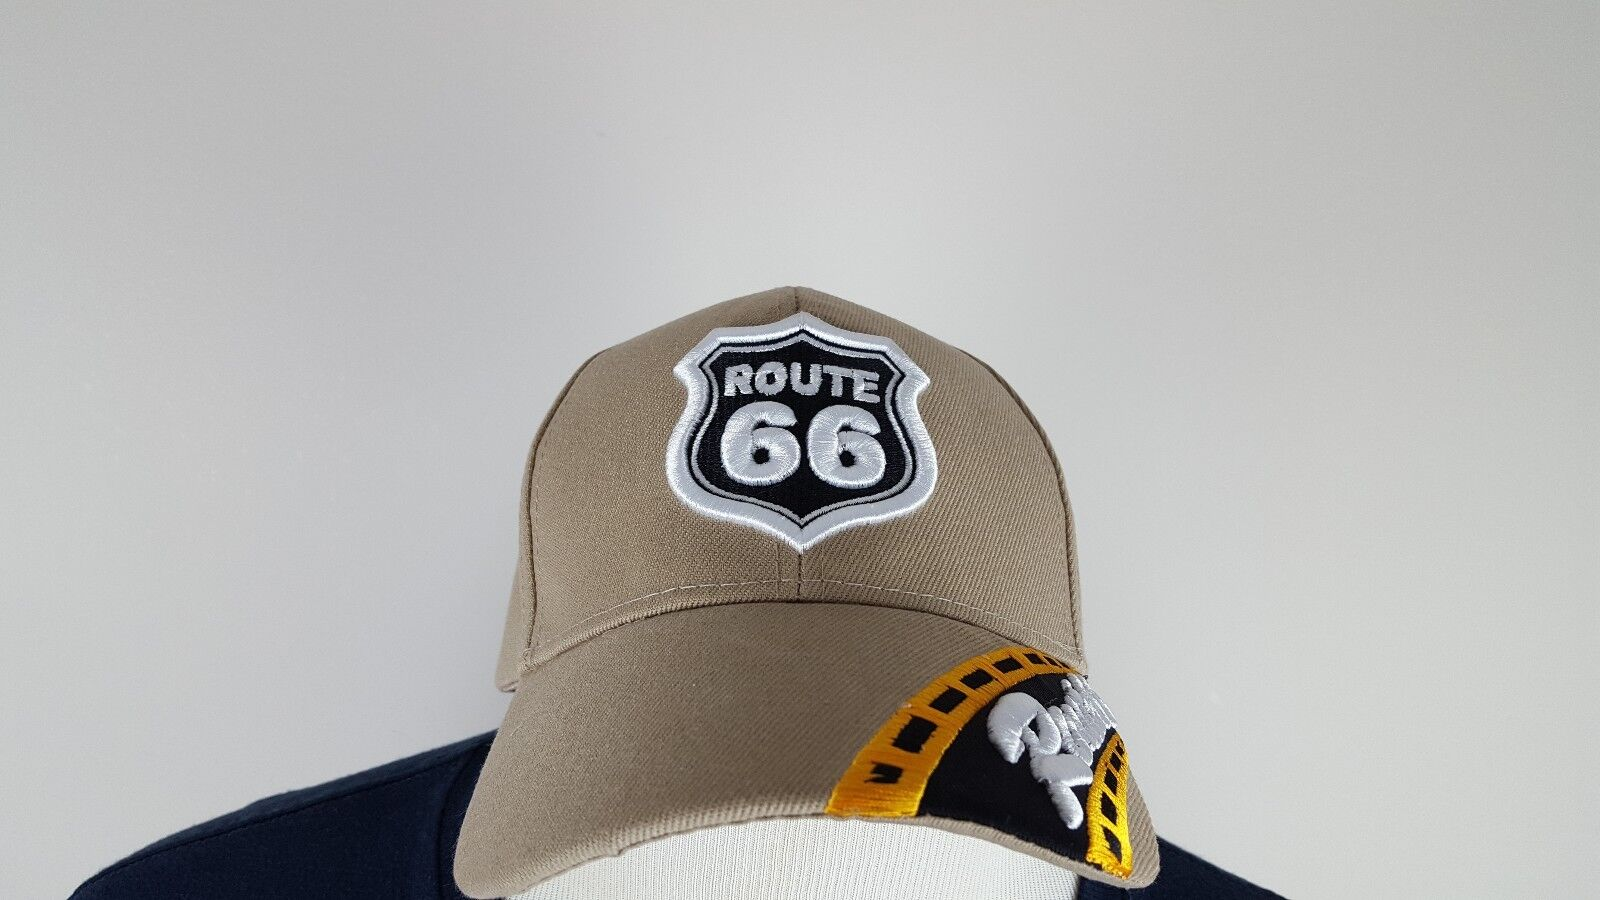 Rt Route Hat 66 Interstate Baseball Hat Route Cap Highway Adjustable 26d162